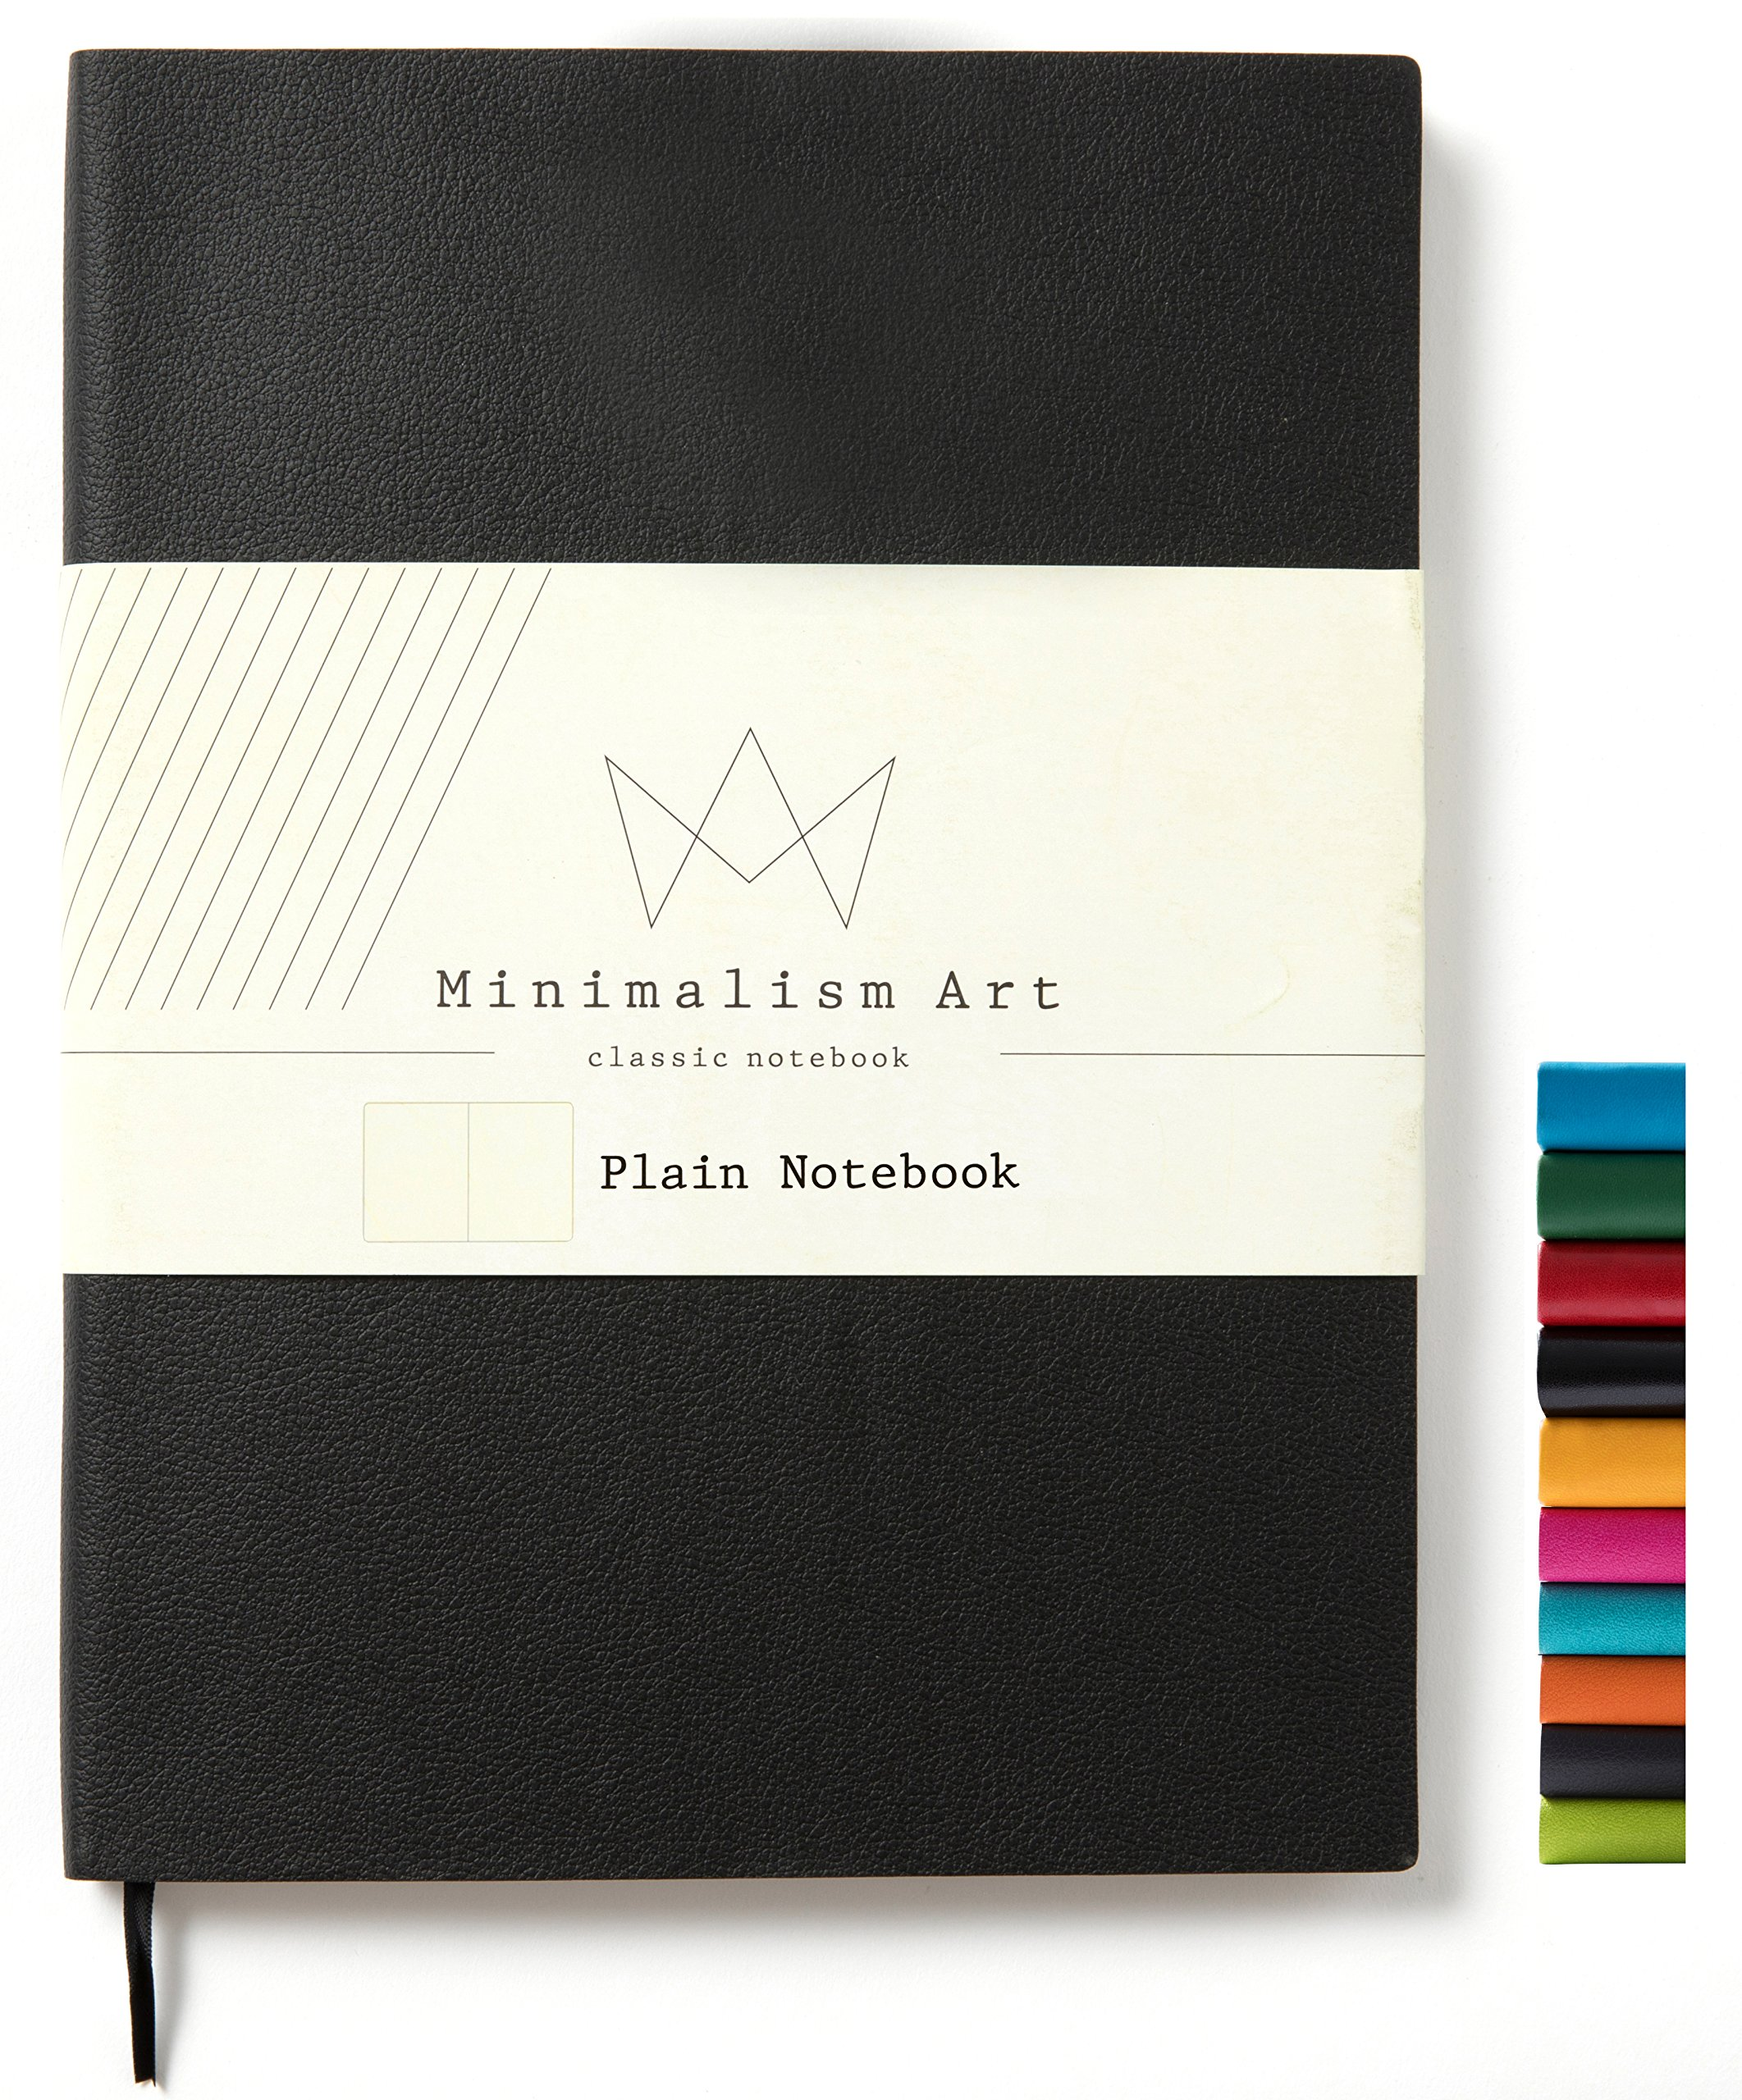 Minimalism Art   Soft Cover Notebook Journal, Size: 7.6'' X 10''; B5+, Black, Plain/Blank Page, 192 Pages, Fine PU Leather, Premium Thick Paper - 100gsm   Designed in San Francisco